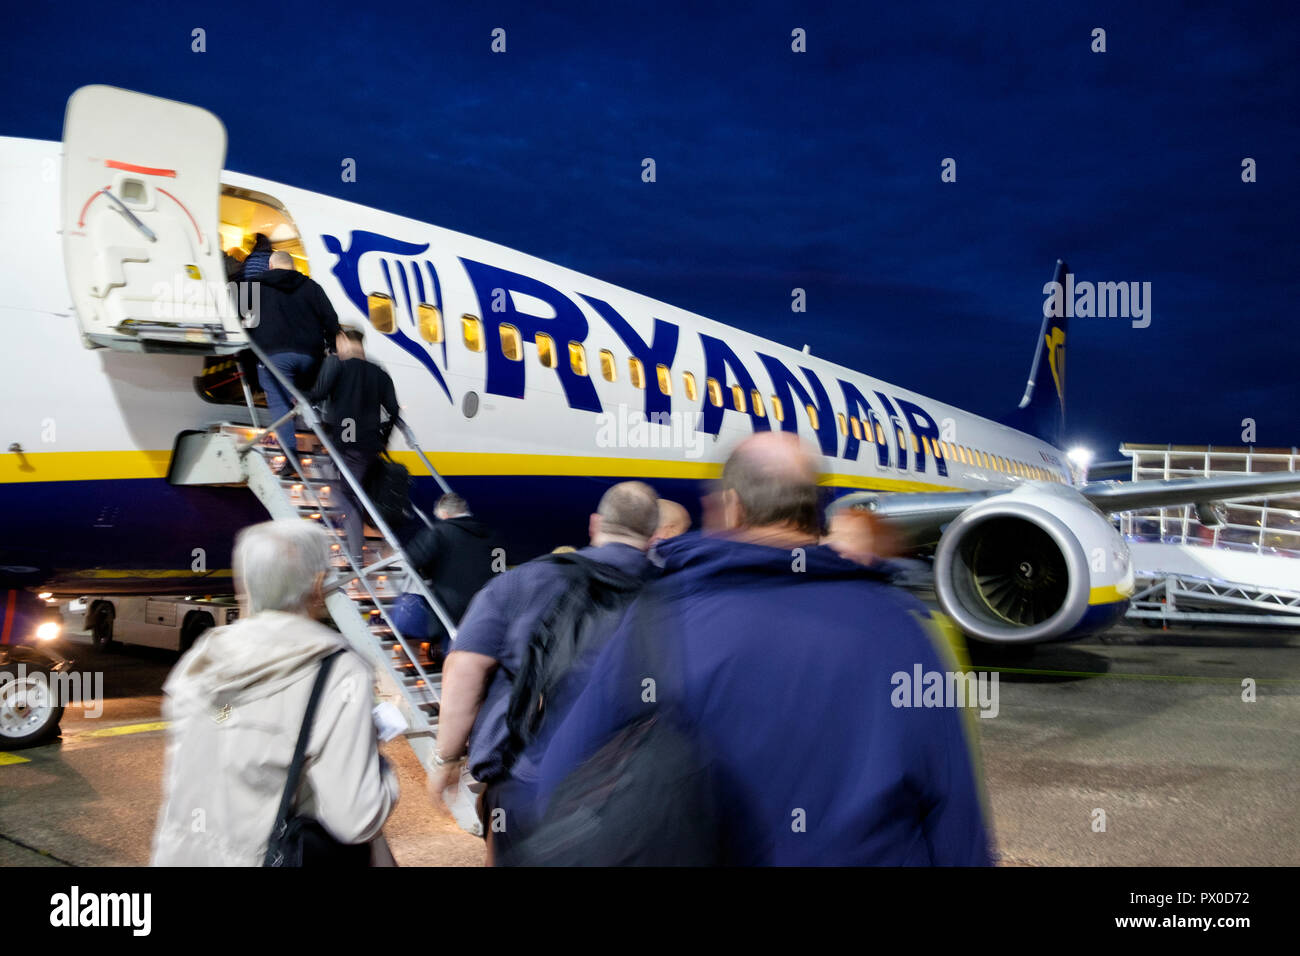 Passengers board a Ryanair aircraft for a flight from Glasgow Prestwick airport. Stock Photo